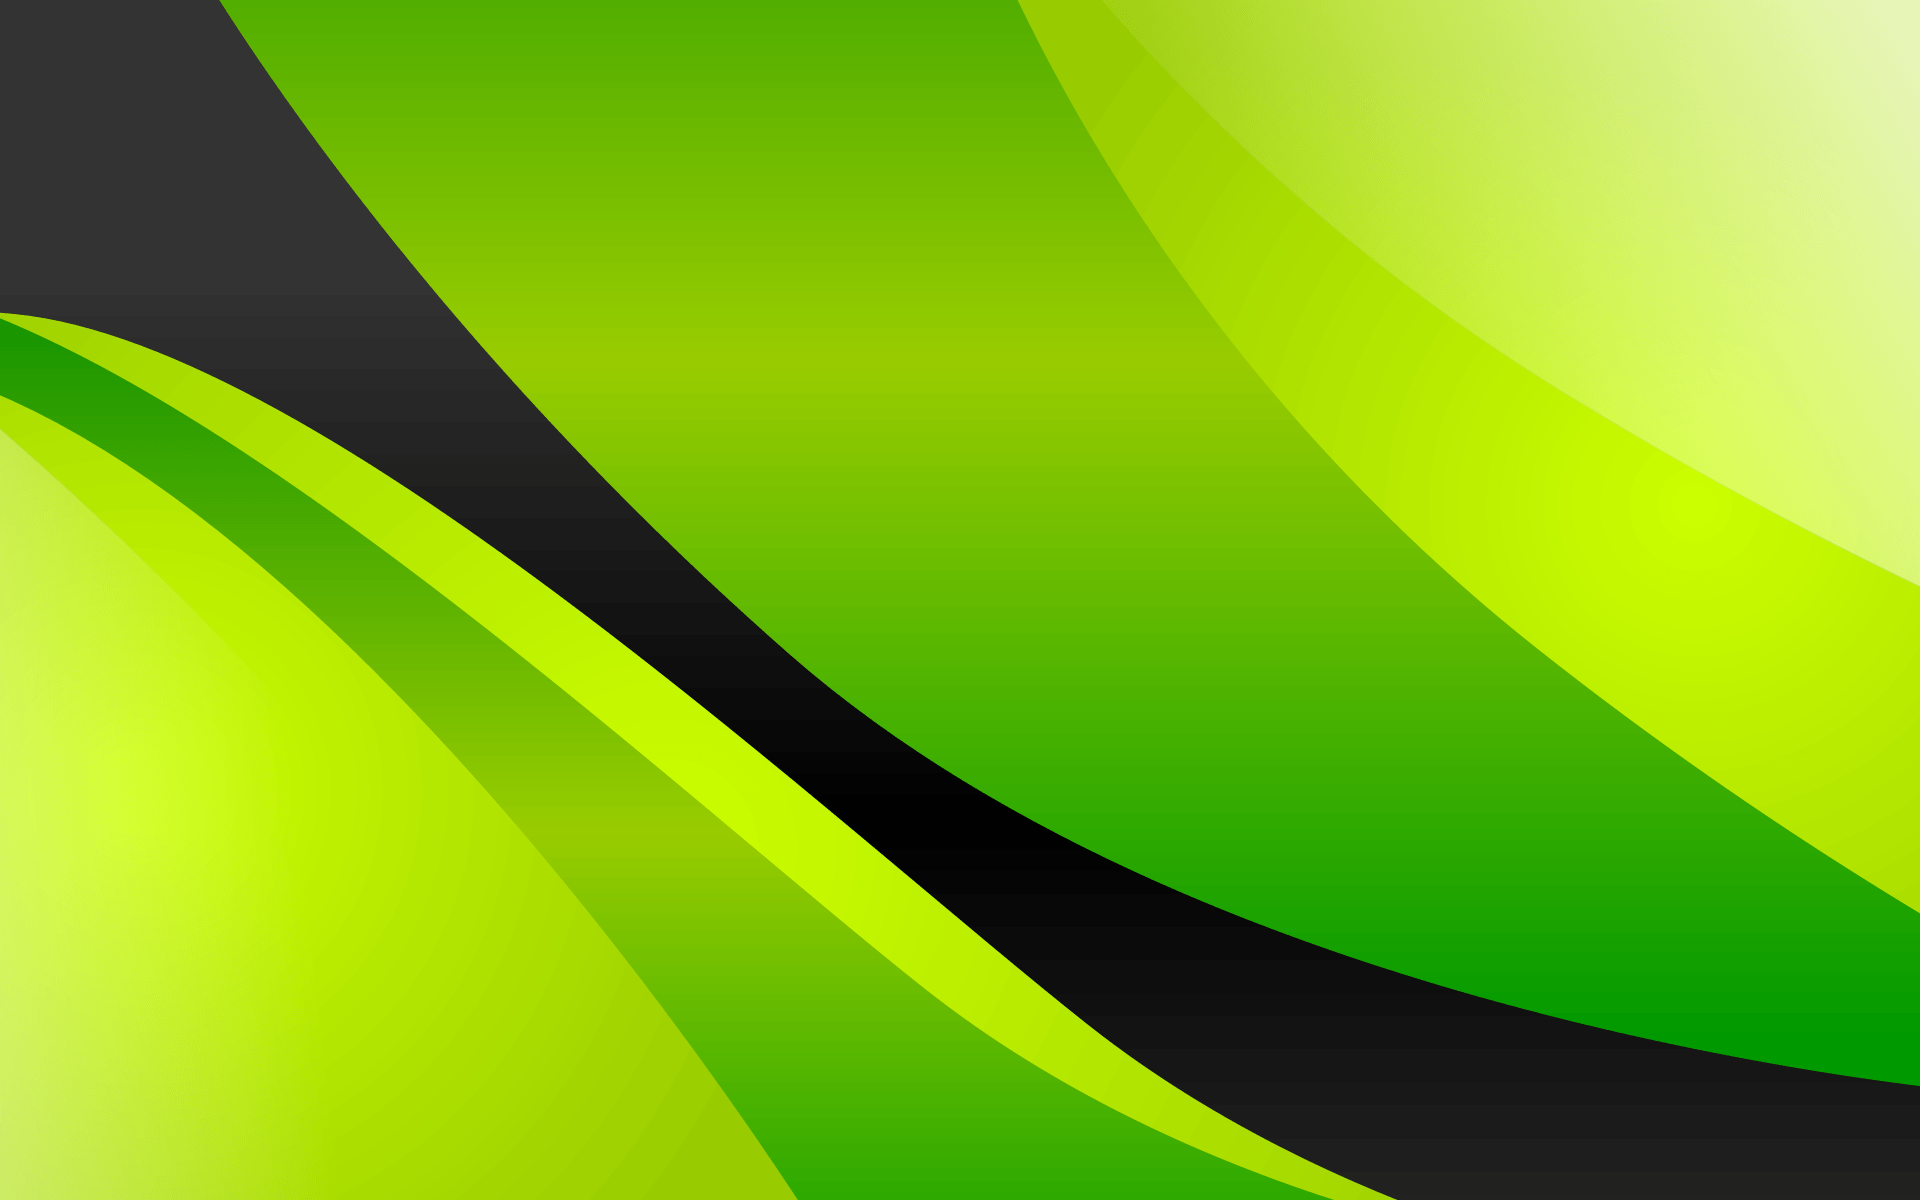 Green Abstract Wallpapers Top Free Green Abstract Backgrounds Wallpaperaccess